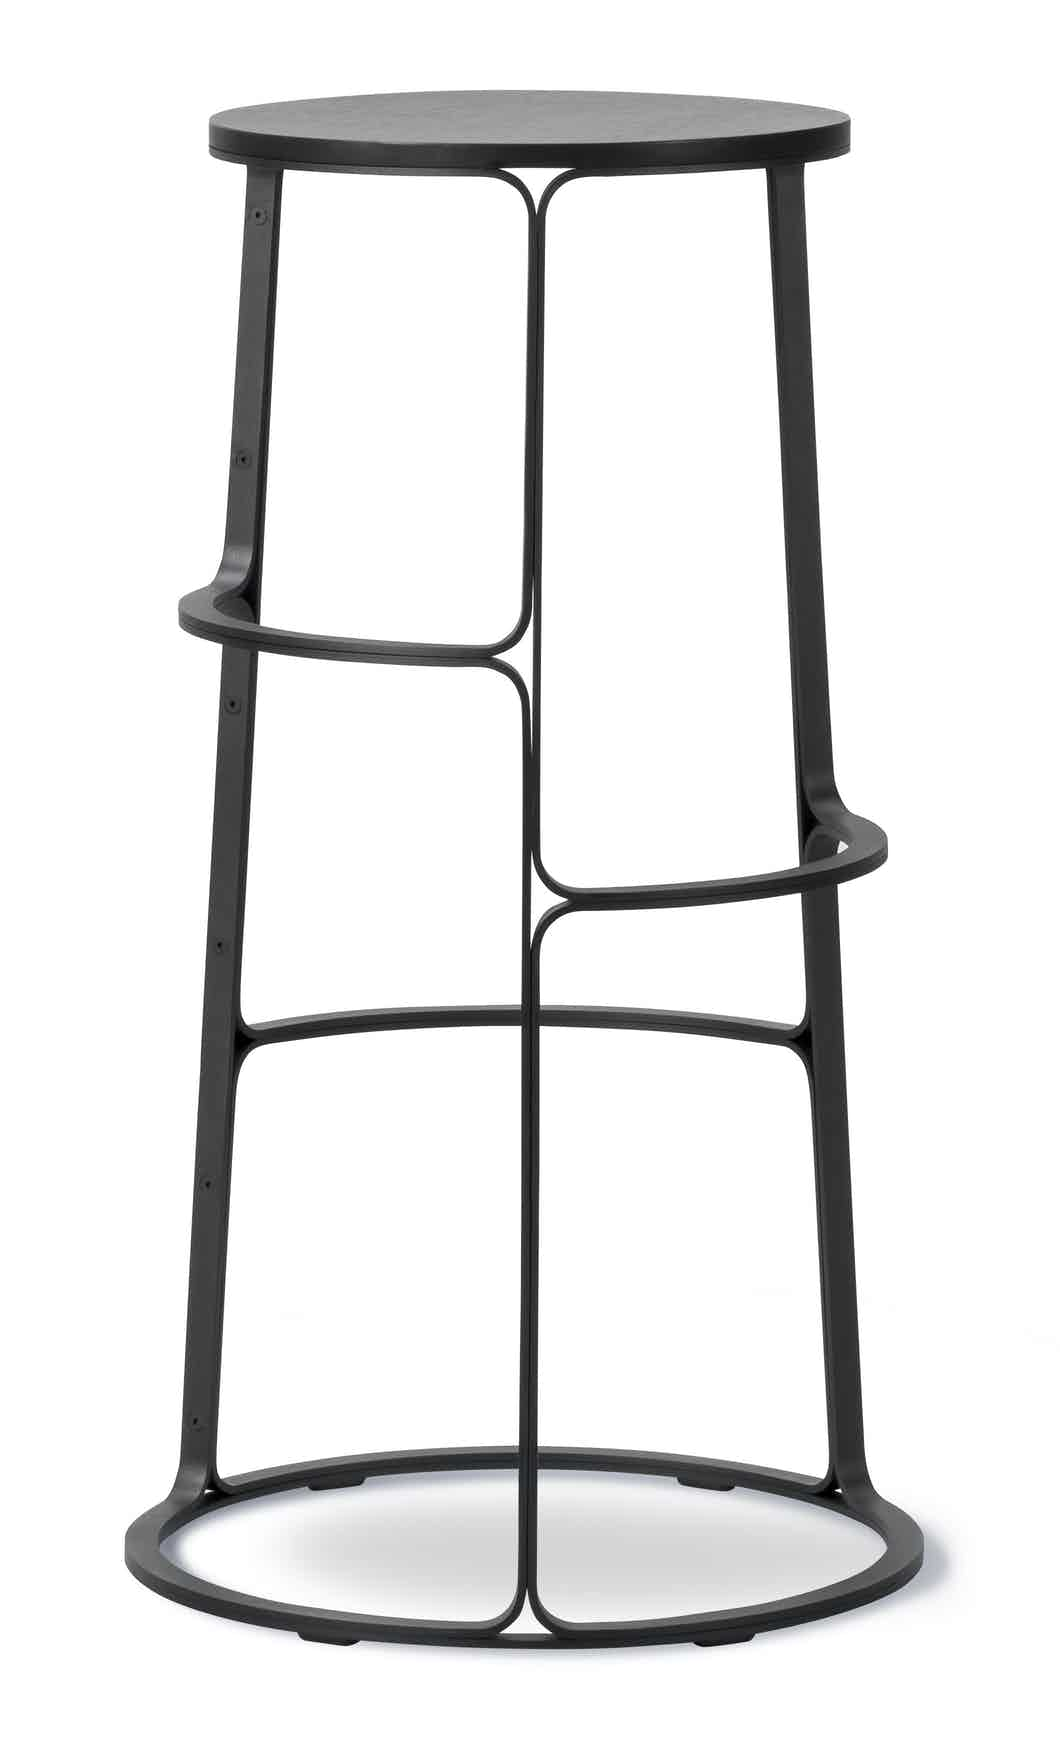 Fredericia Furniture Barbry Stool Haute Living